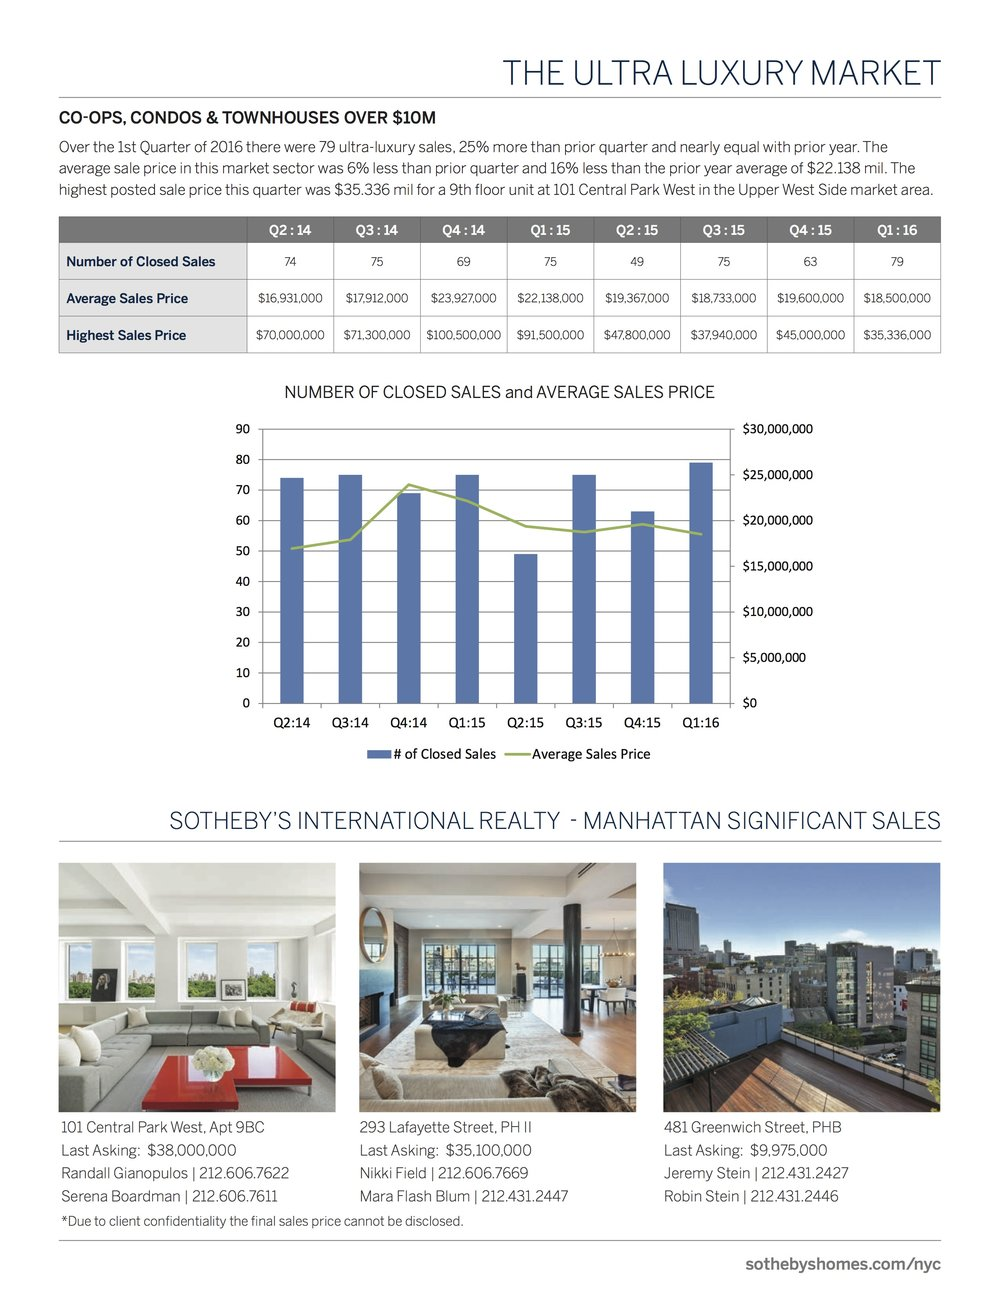 SothebysInternationalRealty_Manhattan_MarketReport_2016_Q1_4.jpg